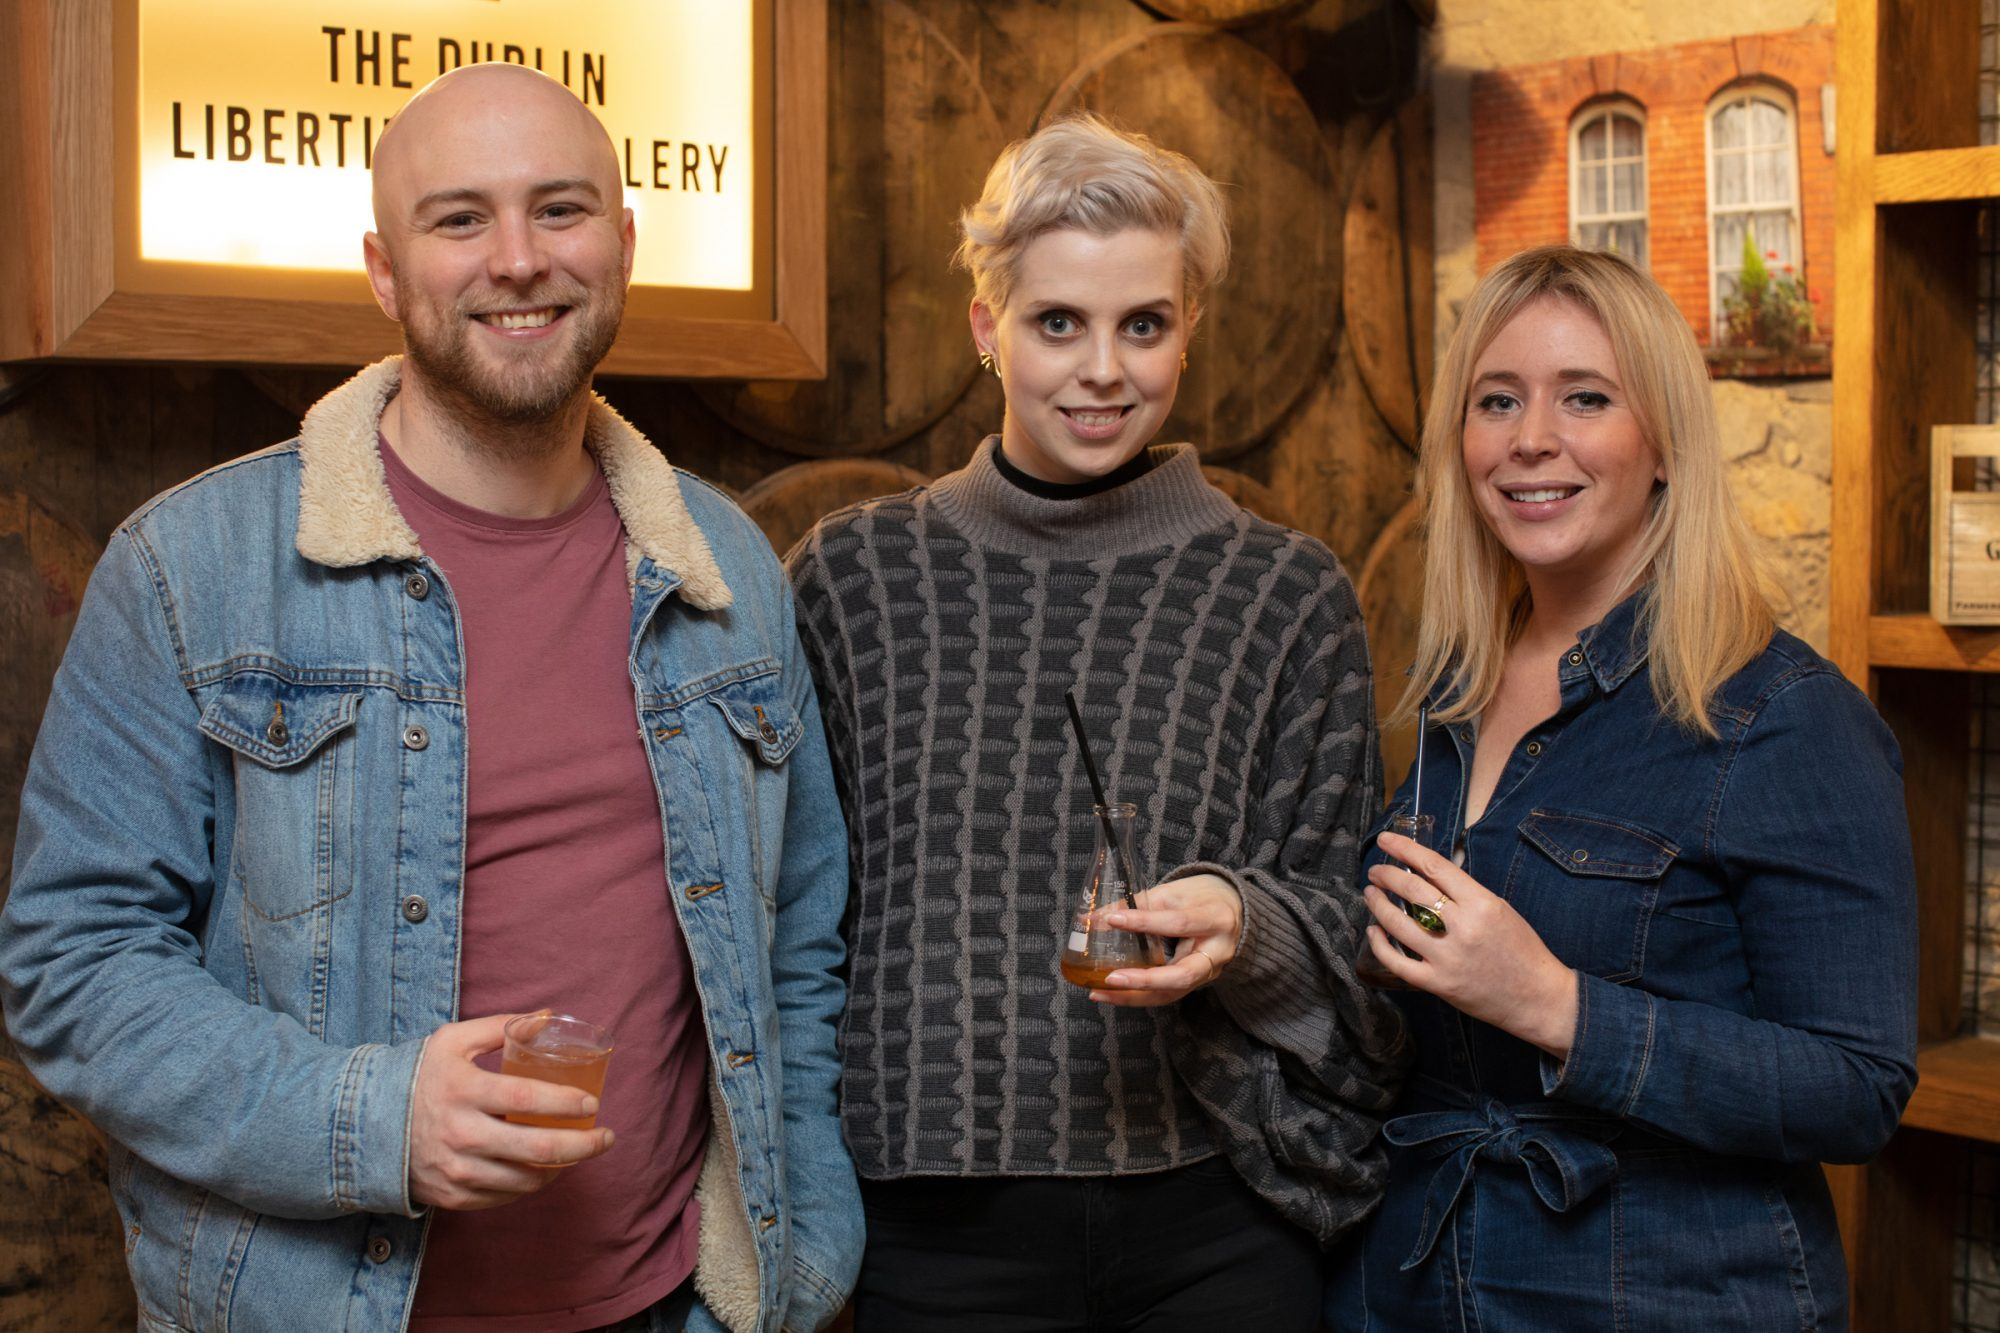 Eoin O'Neill, Celina Murphy & Dee Laffan pictured at the preview of The Dublin Liberties Distillery, the much anticipated new craft distillery in the heart of the Liberties. Photo: Anthony Woods.